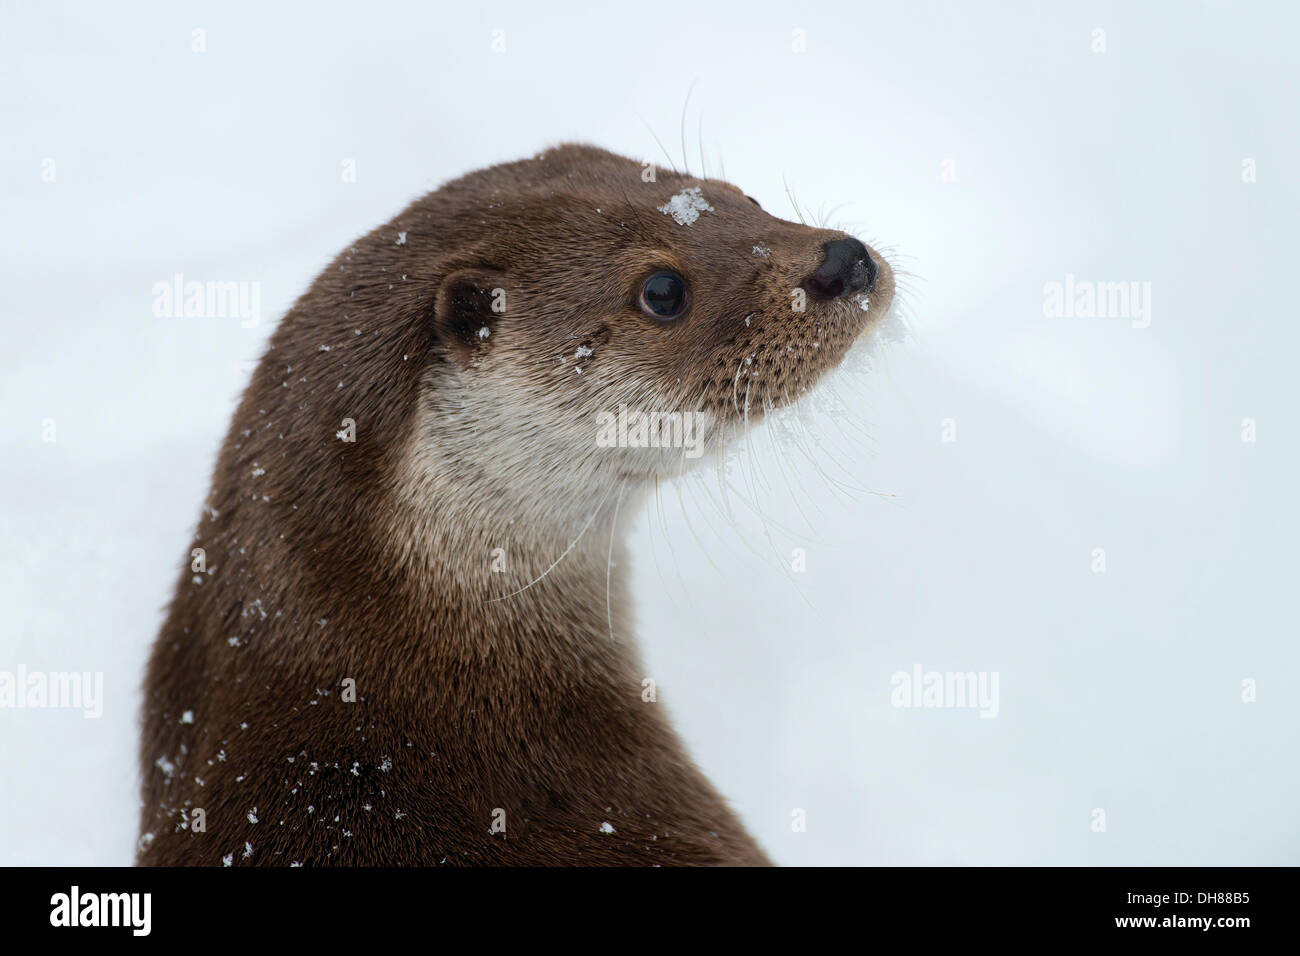 Eurasian Otter (Lutra lutra), animal enclosure, Bavarian Forest National Park, Bavaria, Germany - Stock Image